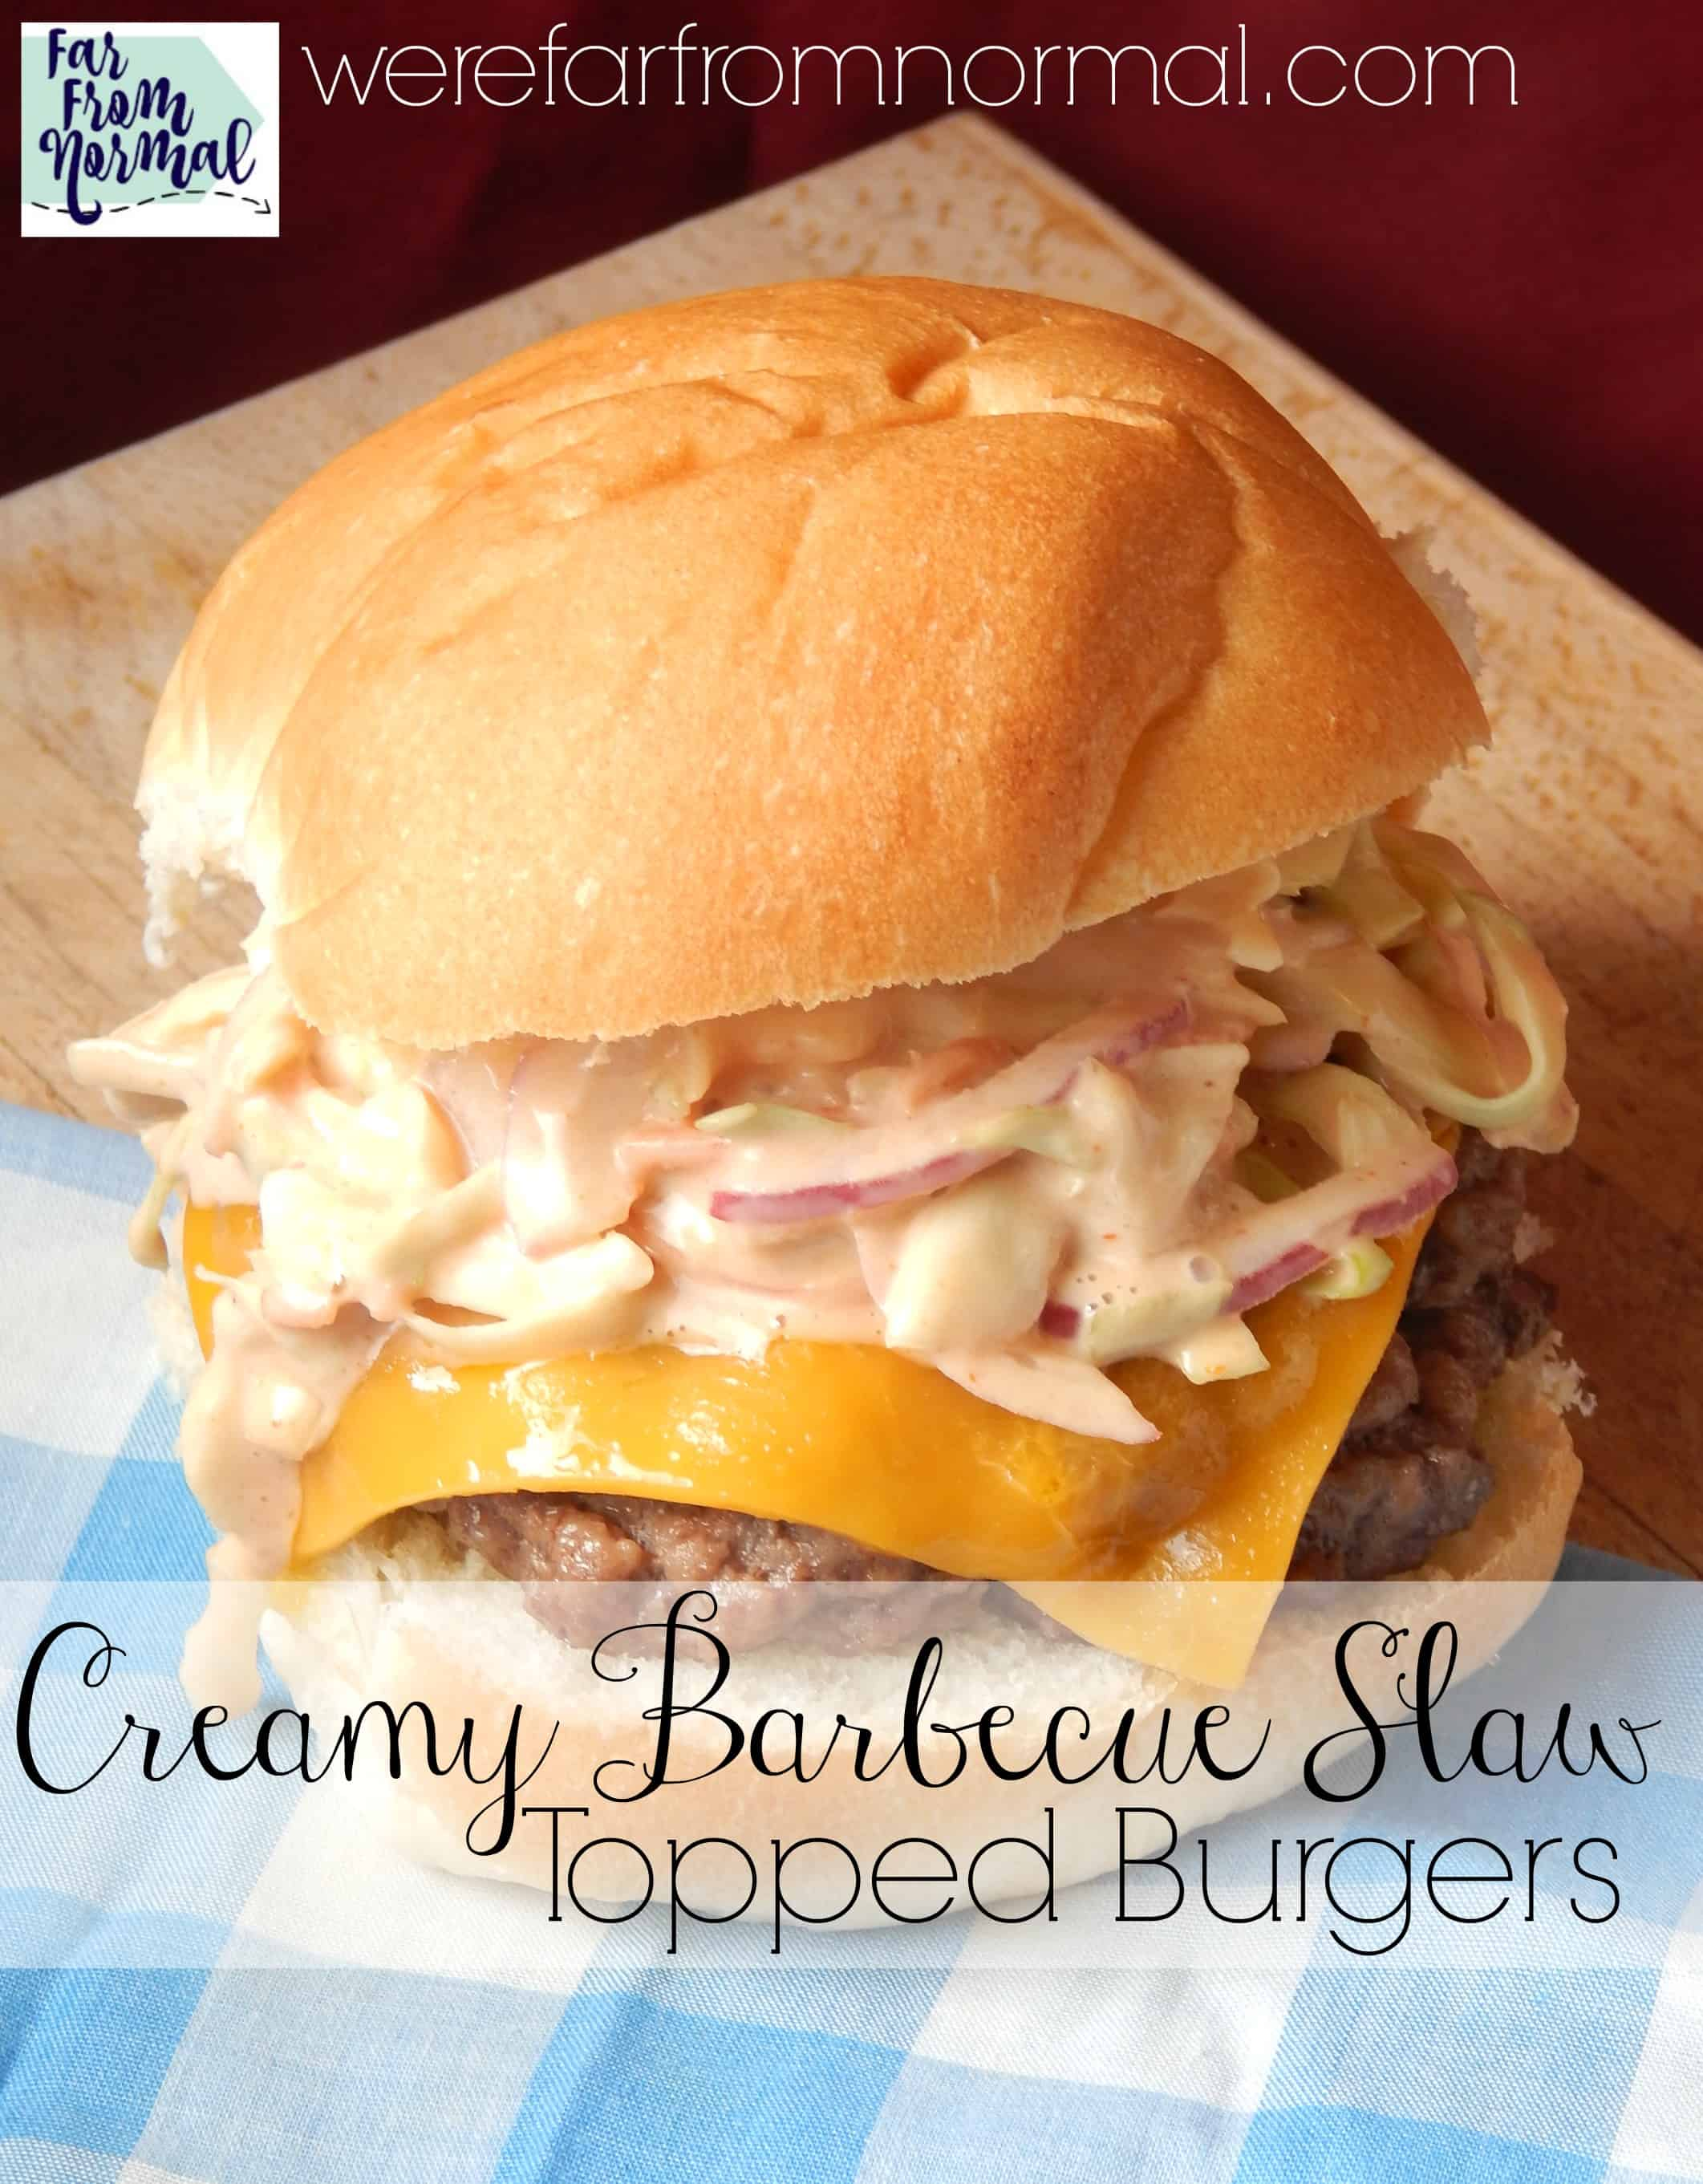 Creamy Barbecue Coleslaw